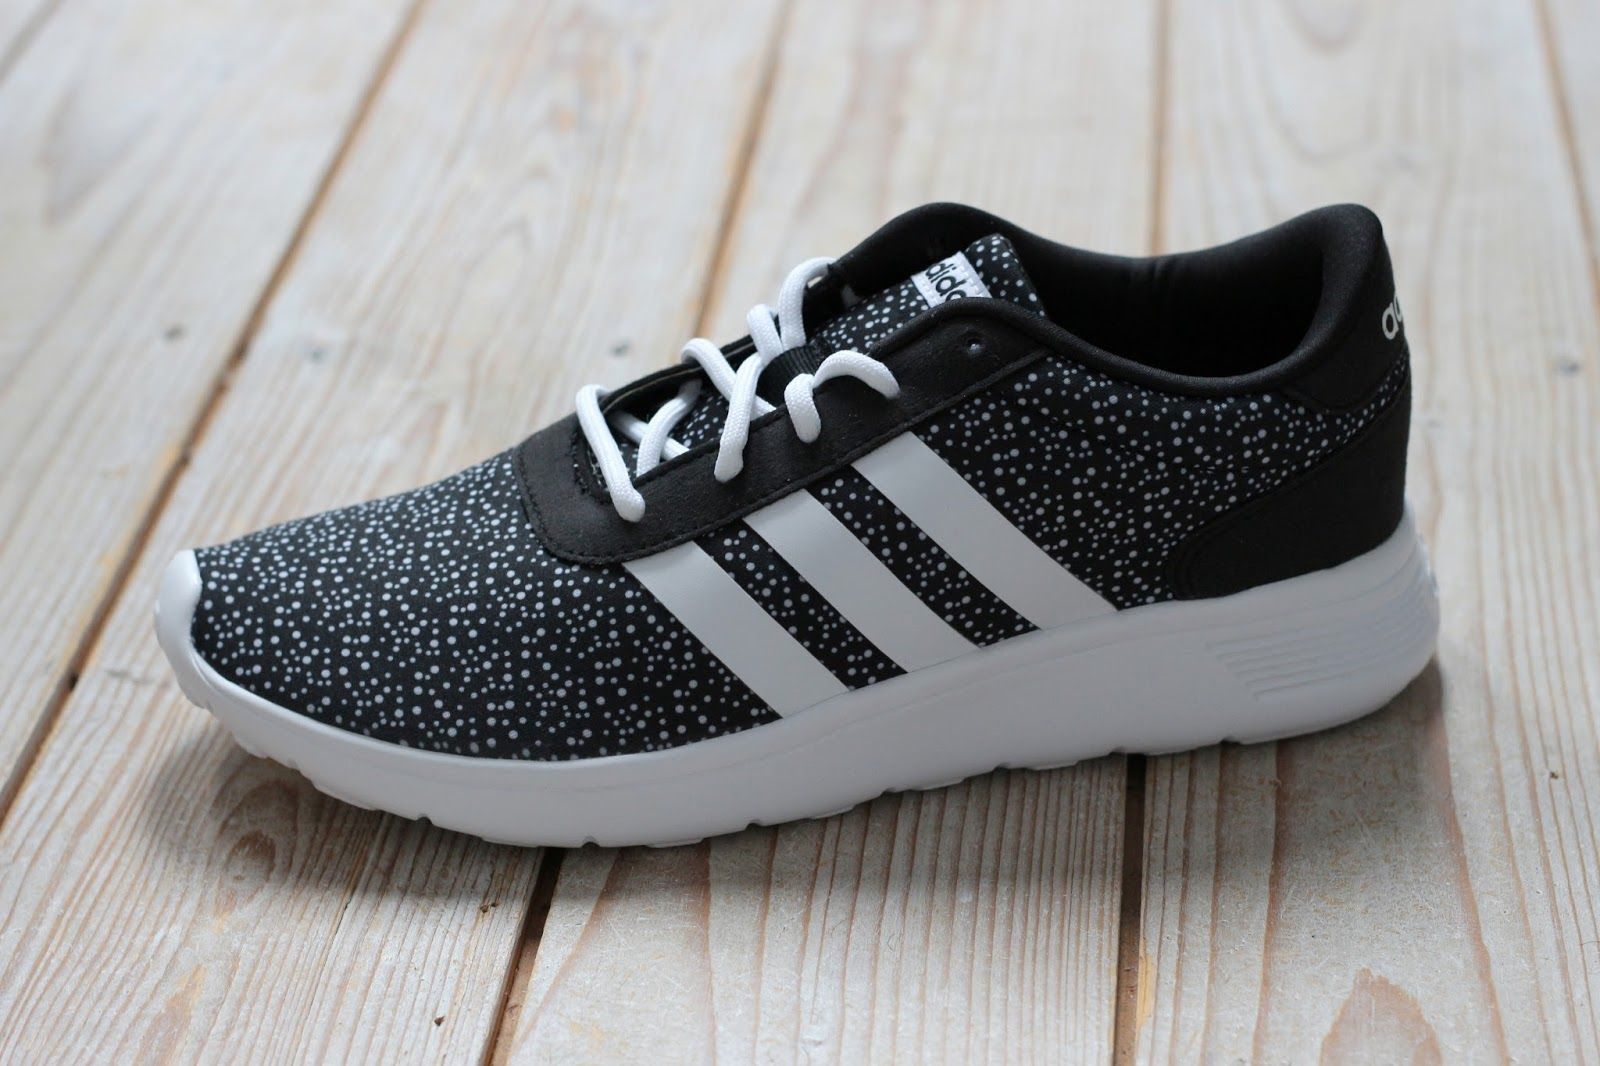 adidas neo lite racer sneakers 2000 39 s adidas. Black Bedroom Furniture Sets. Home Design Ideas